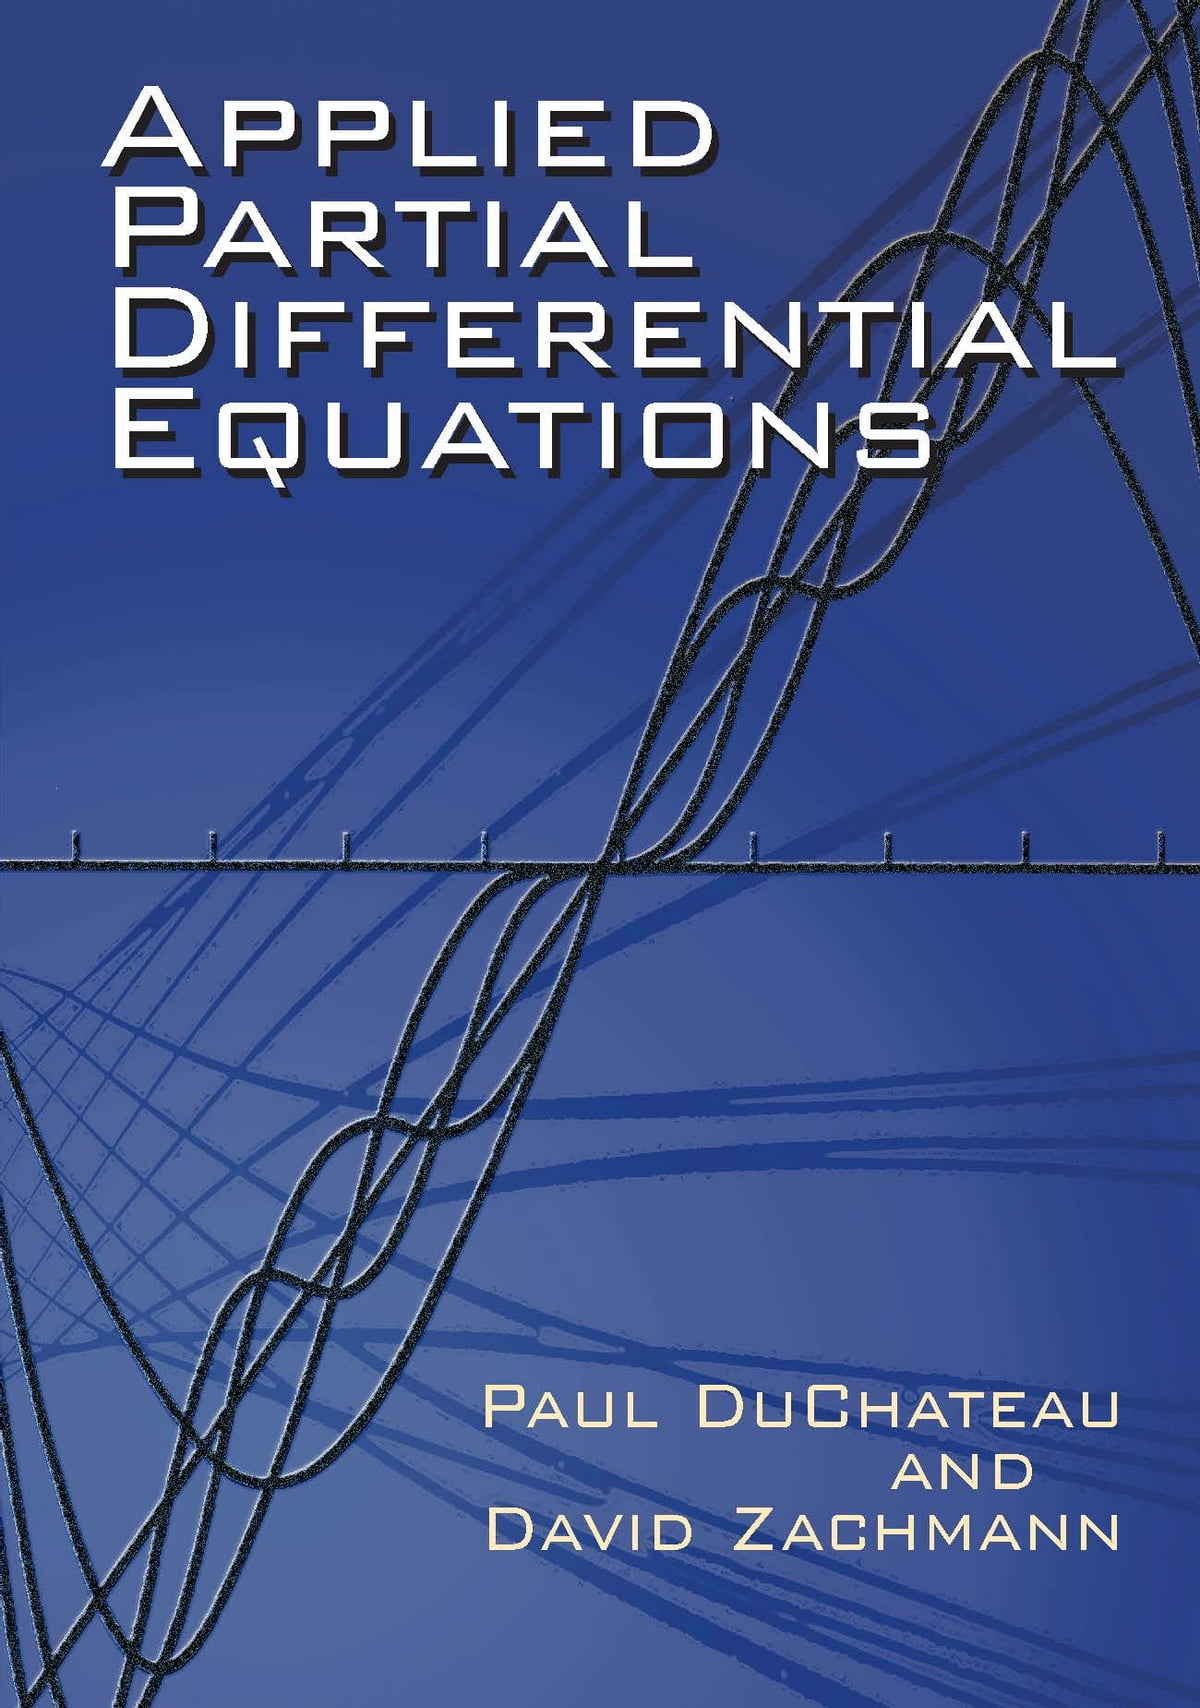 Applied Partial Differential Equations eBook by Paul DuChateau -  9780486141879 | Rakuten Kobo